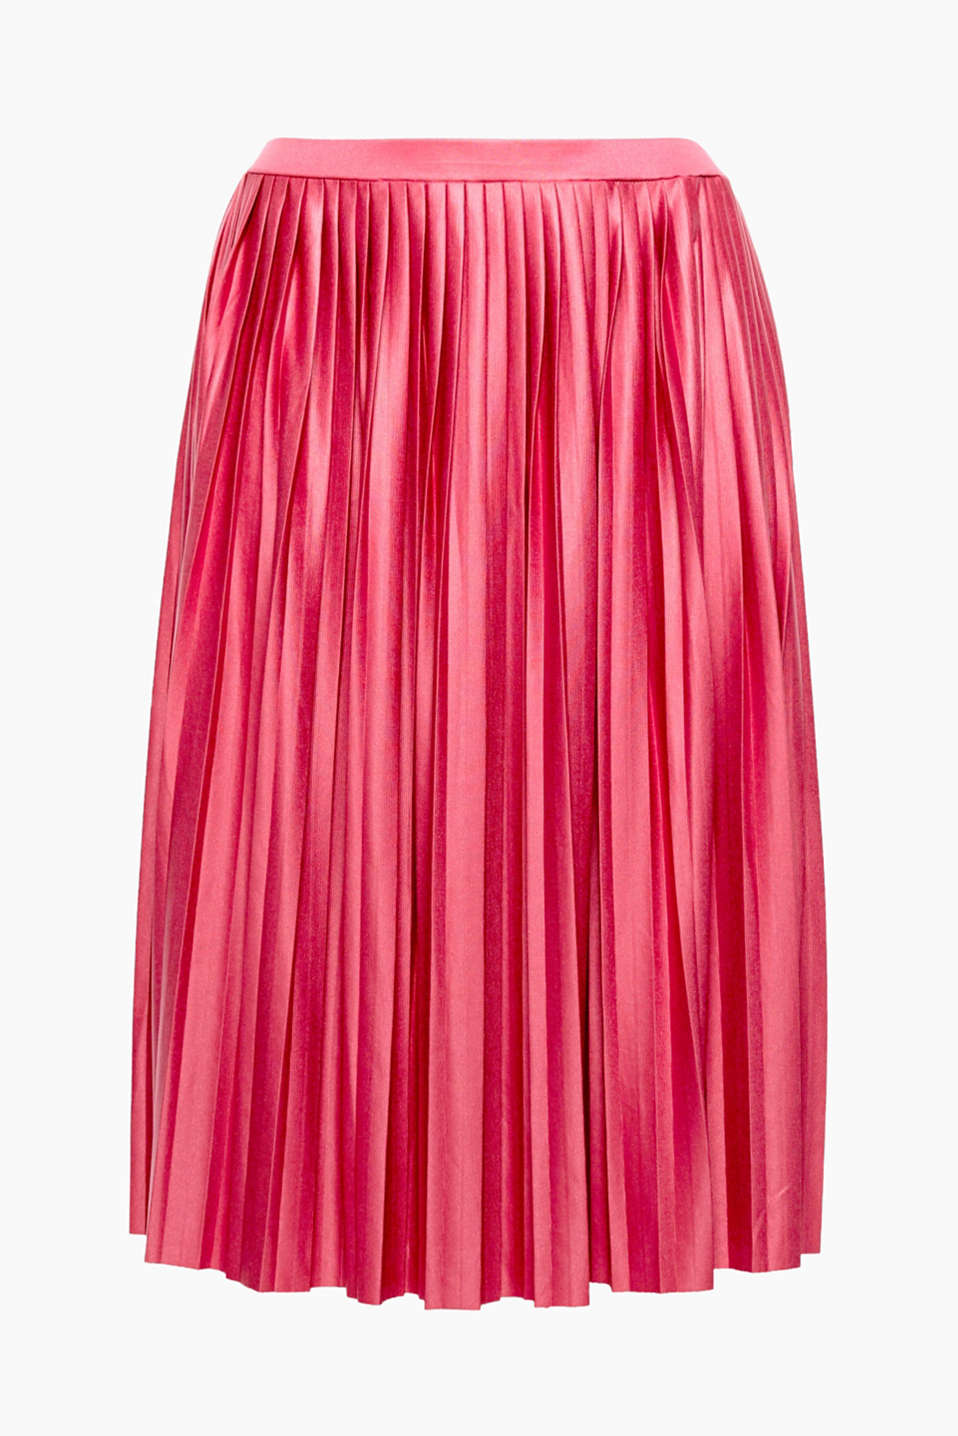 This floaty, pleated, midi-length skirt is ultra-feminine and has a striking shimmer.